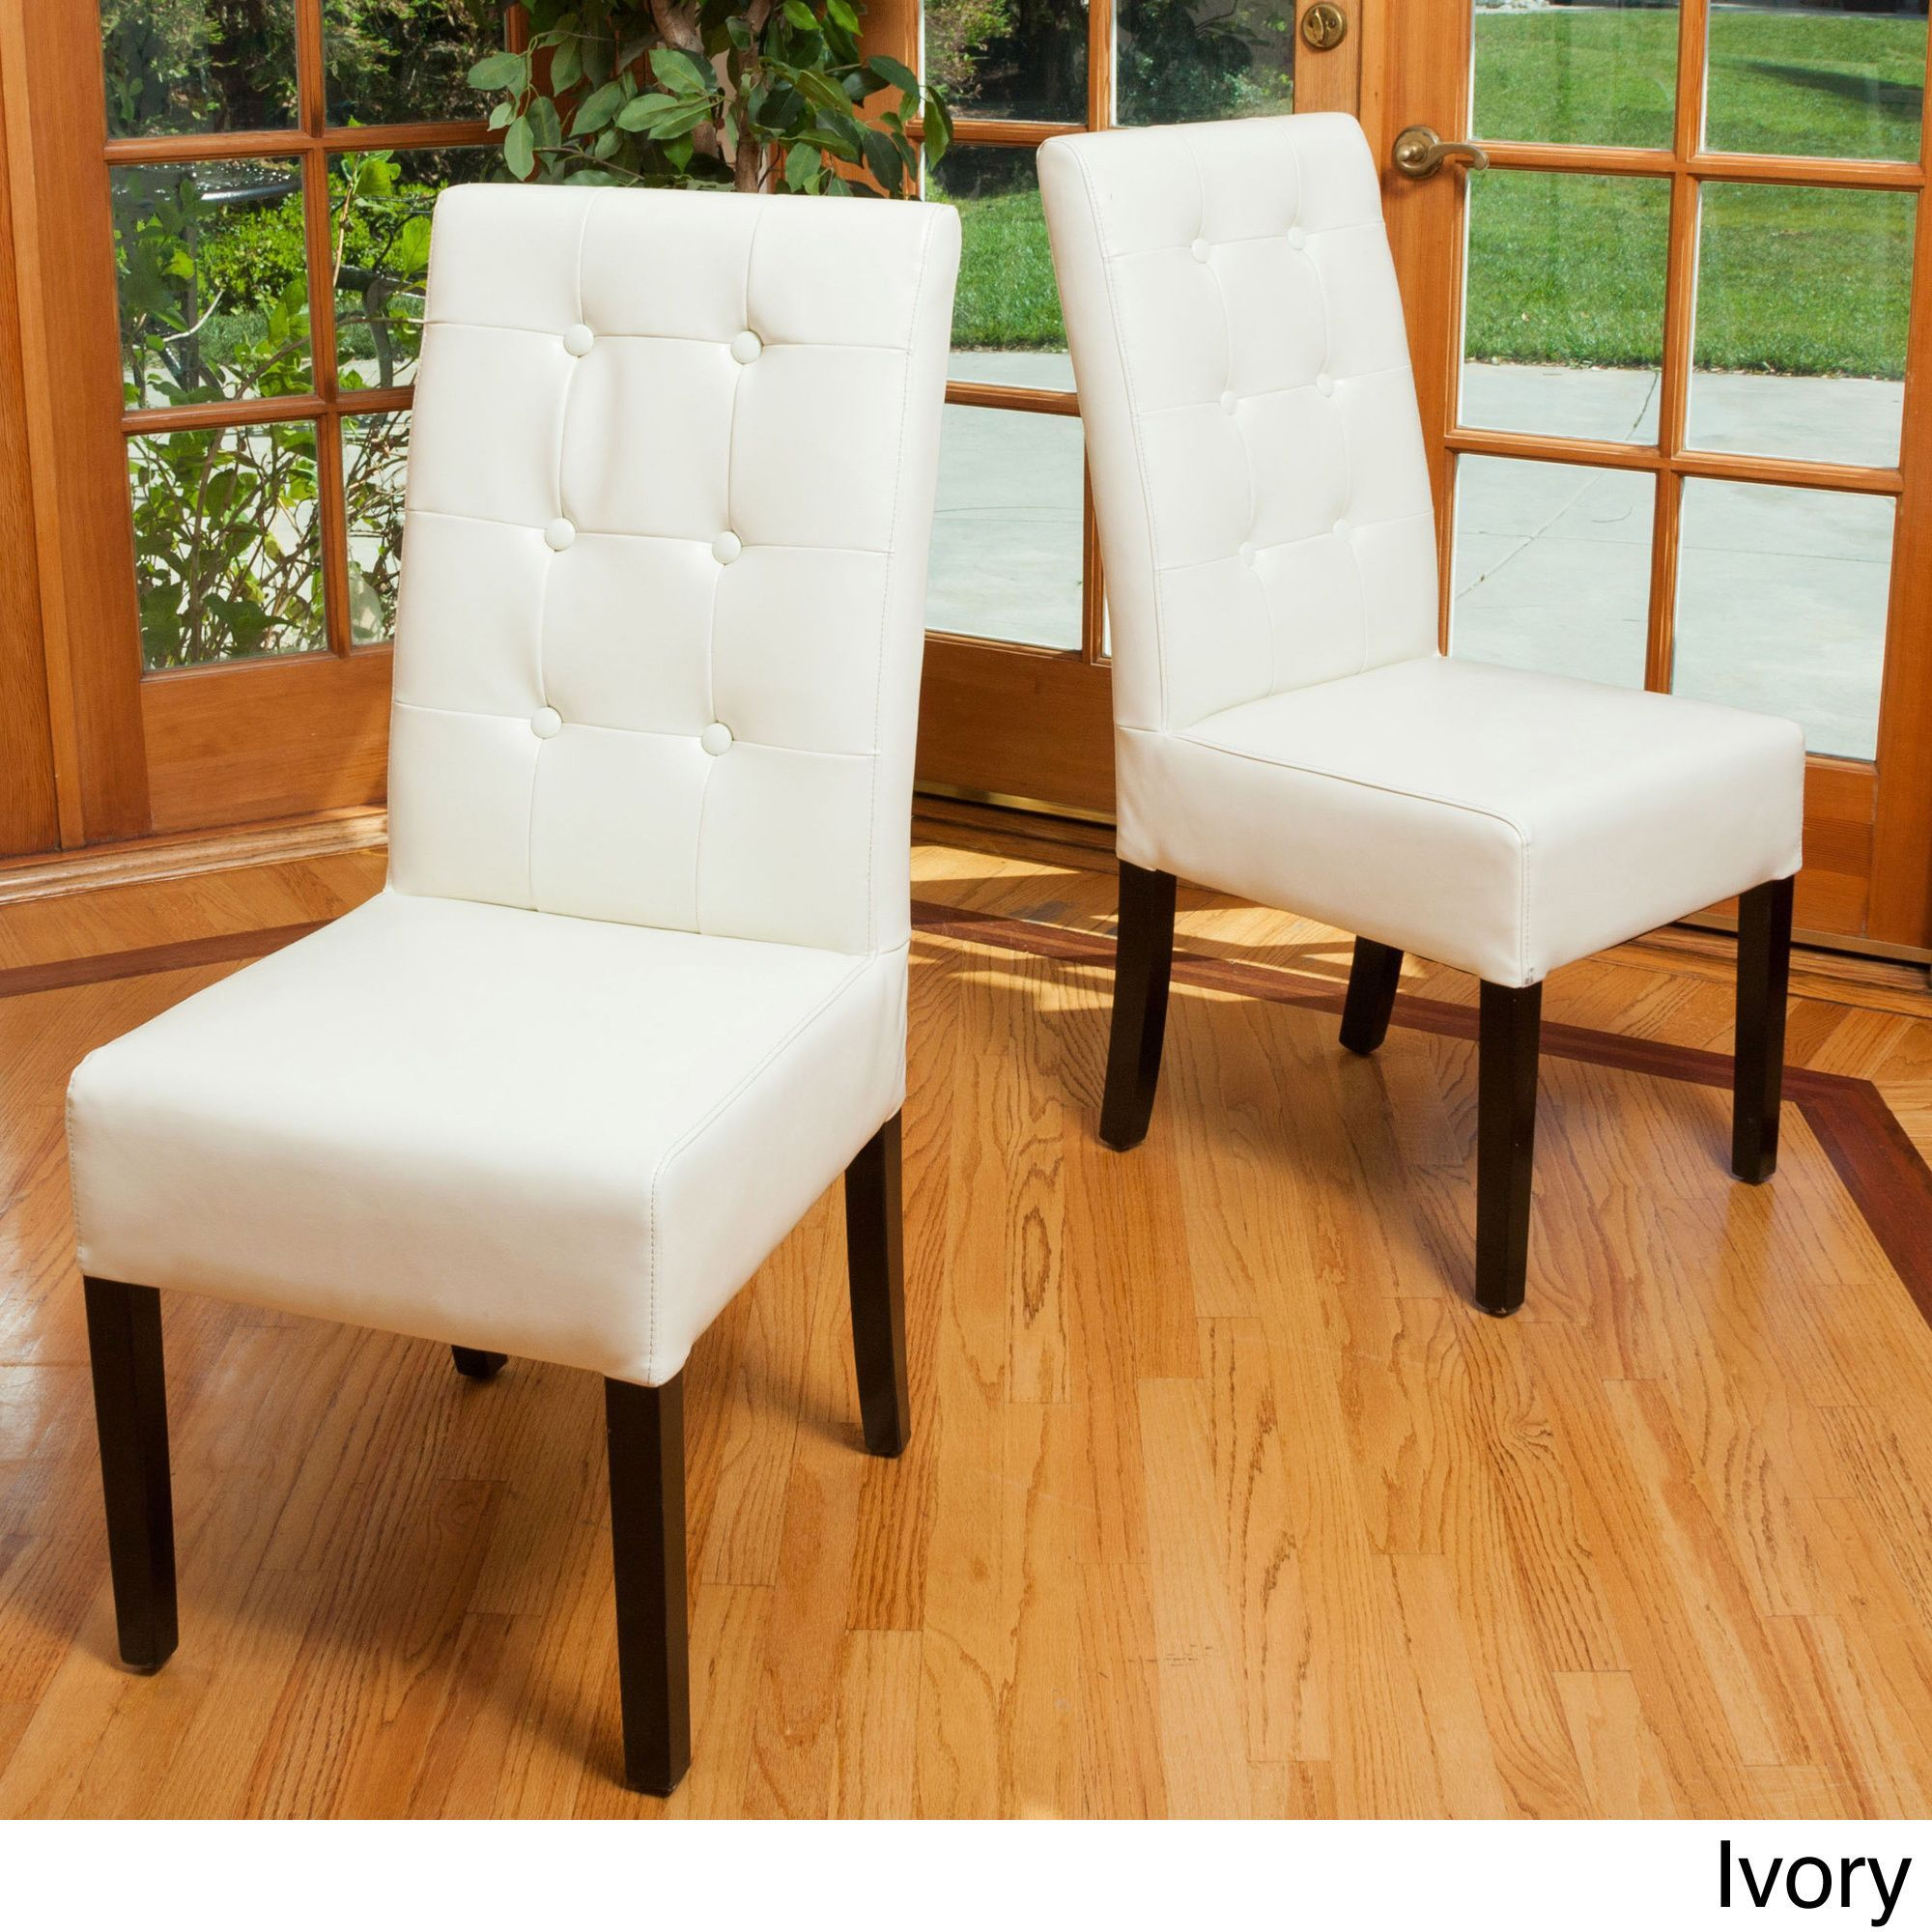 Christopher Knight Home Jace Button Tufted Leather Dining Chair Beauteous Ivory Leather Dining Room Chairs Decorating Inspiration